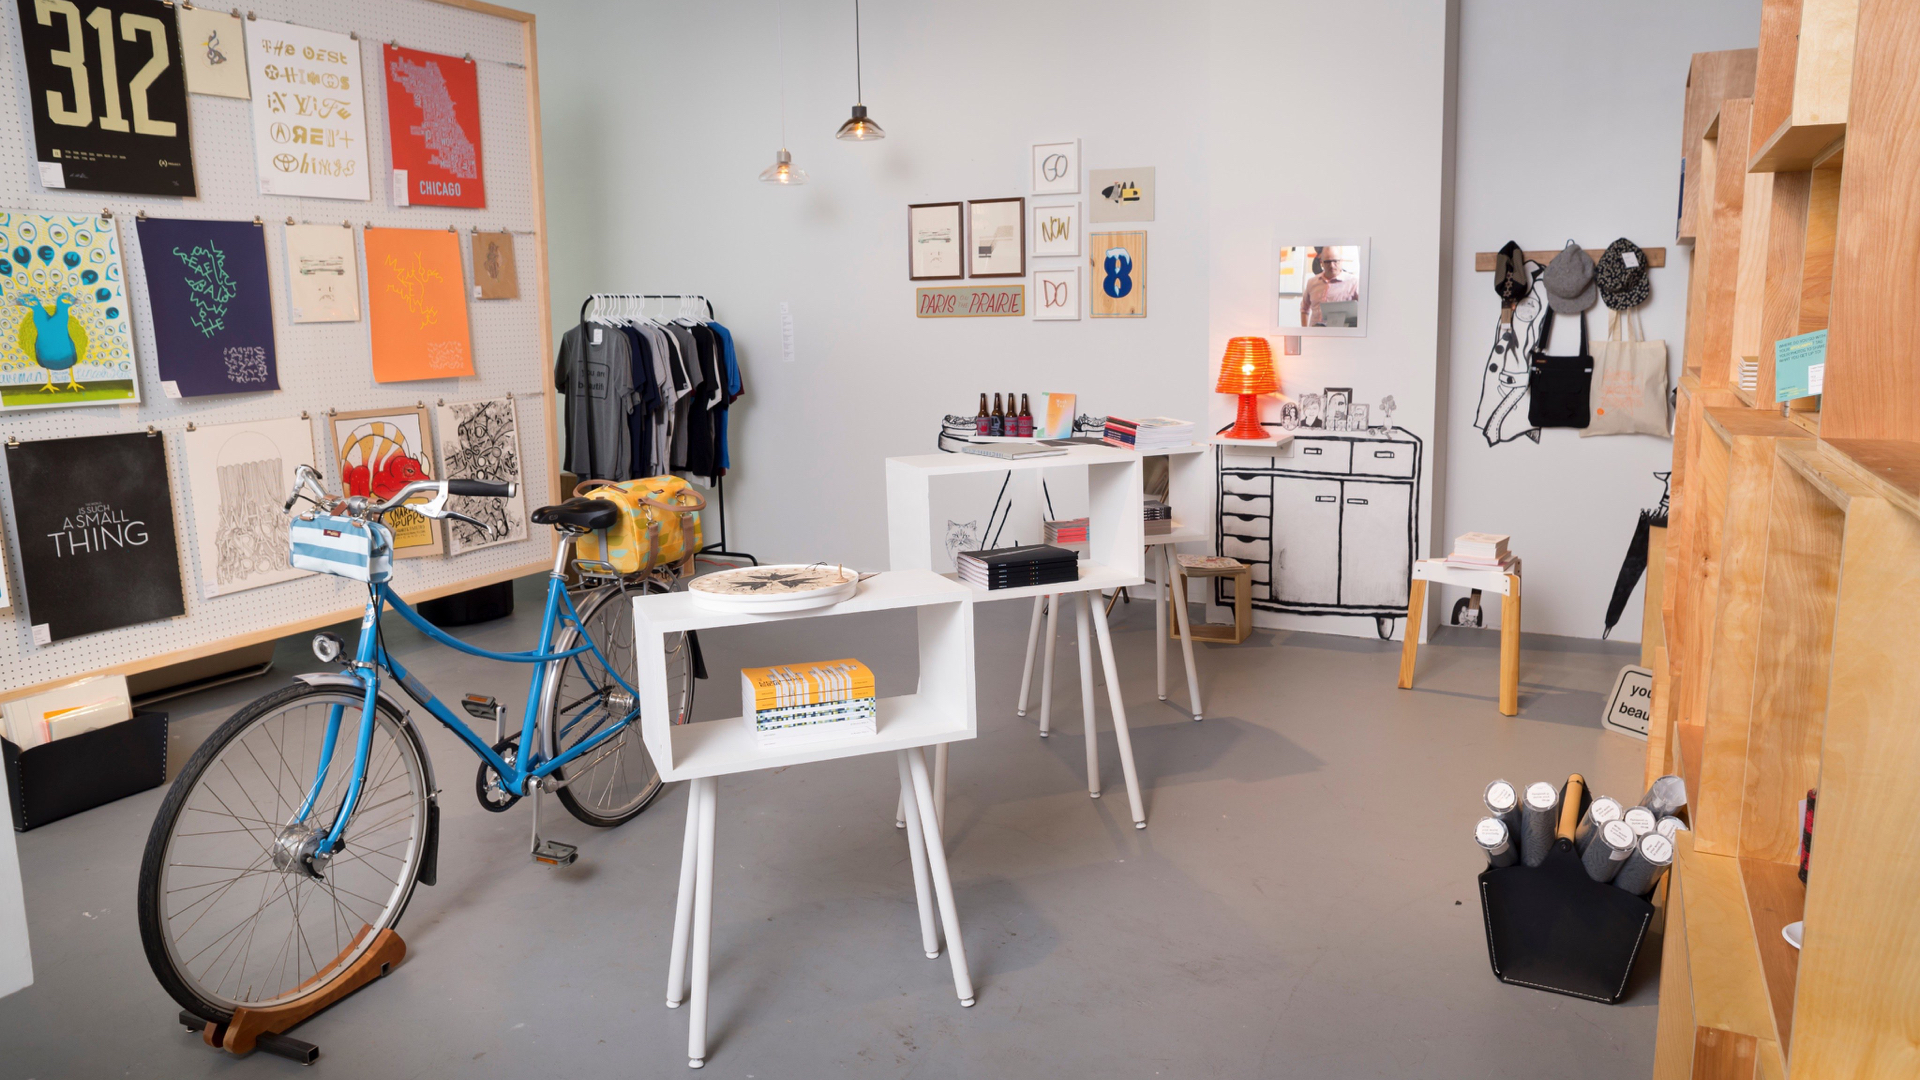 I integratebusiness and beauty,function and curation,first use and future reuse. - Retail DirectorThe Chicago Design Museum Store